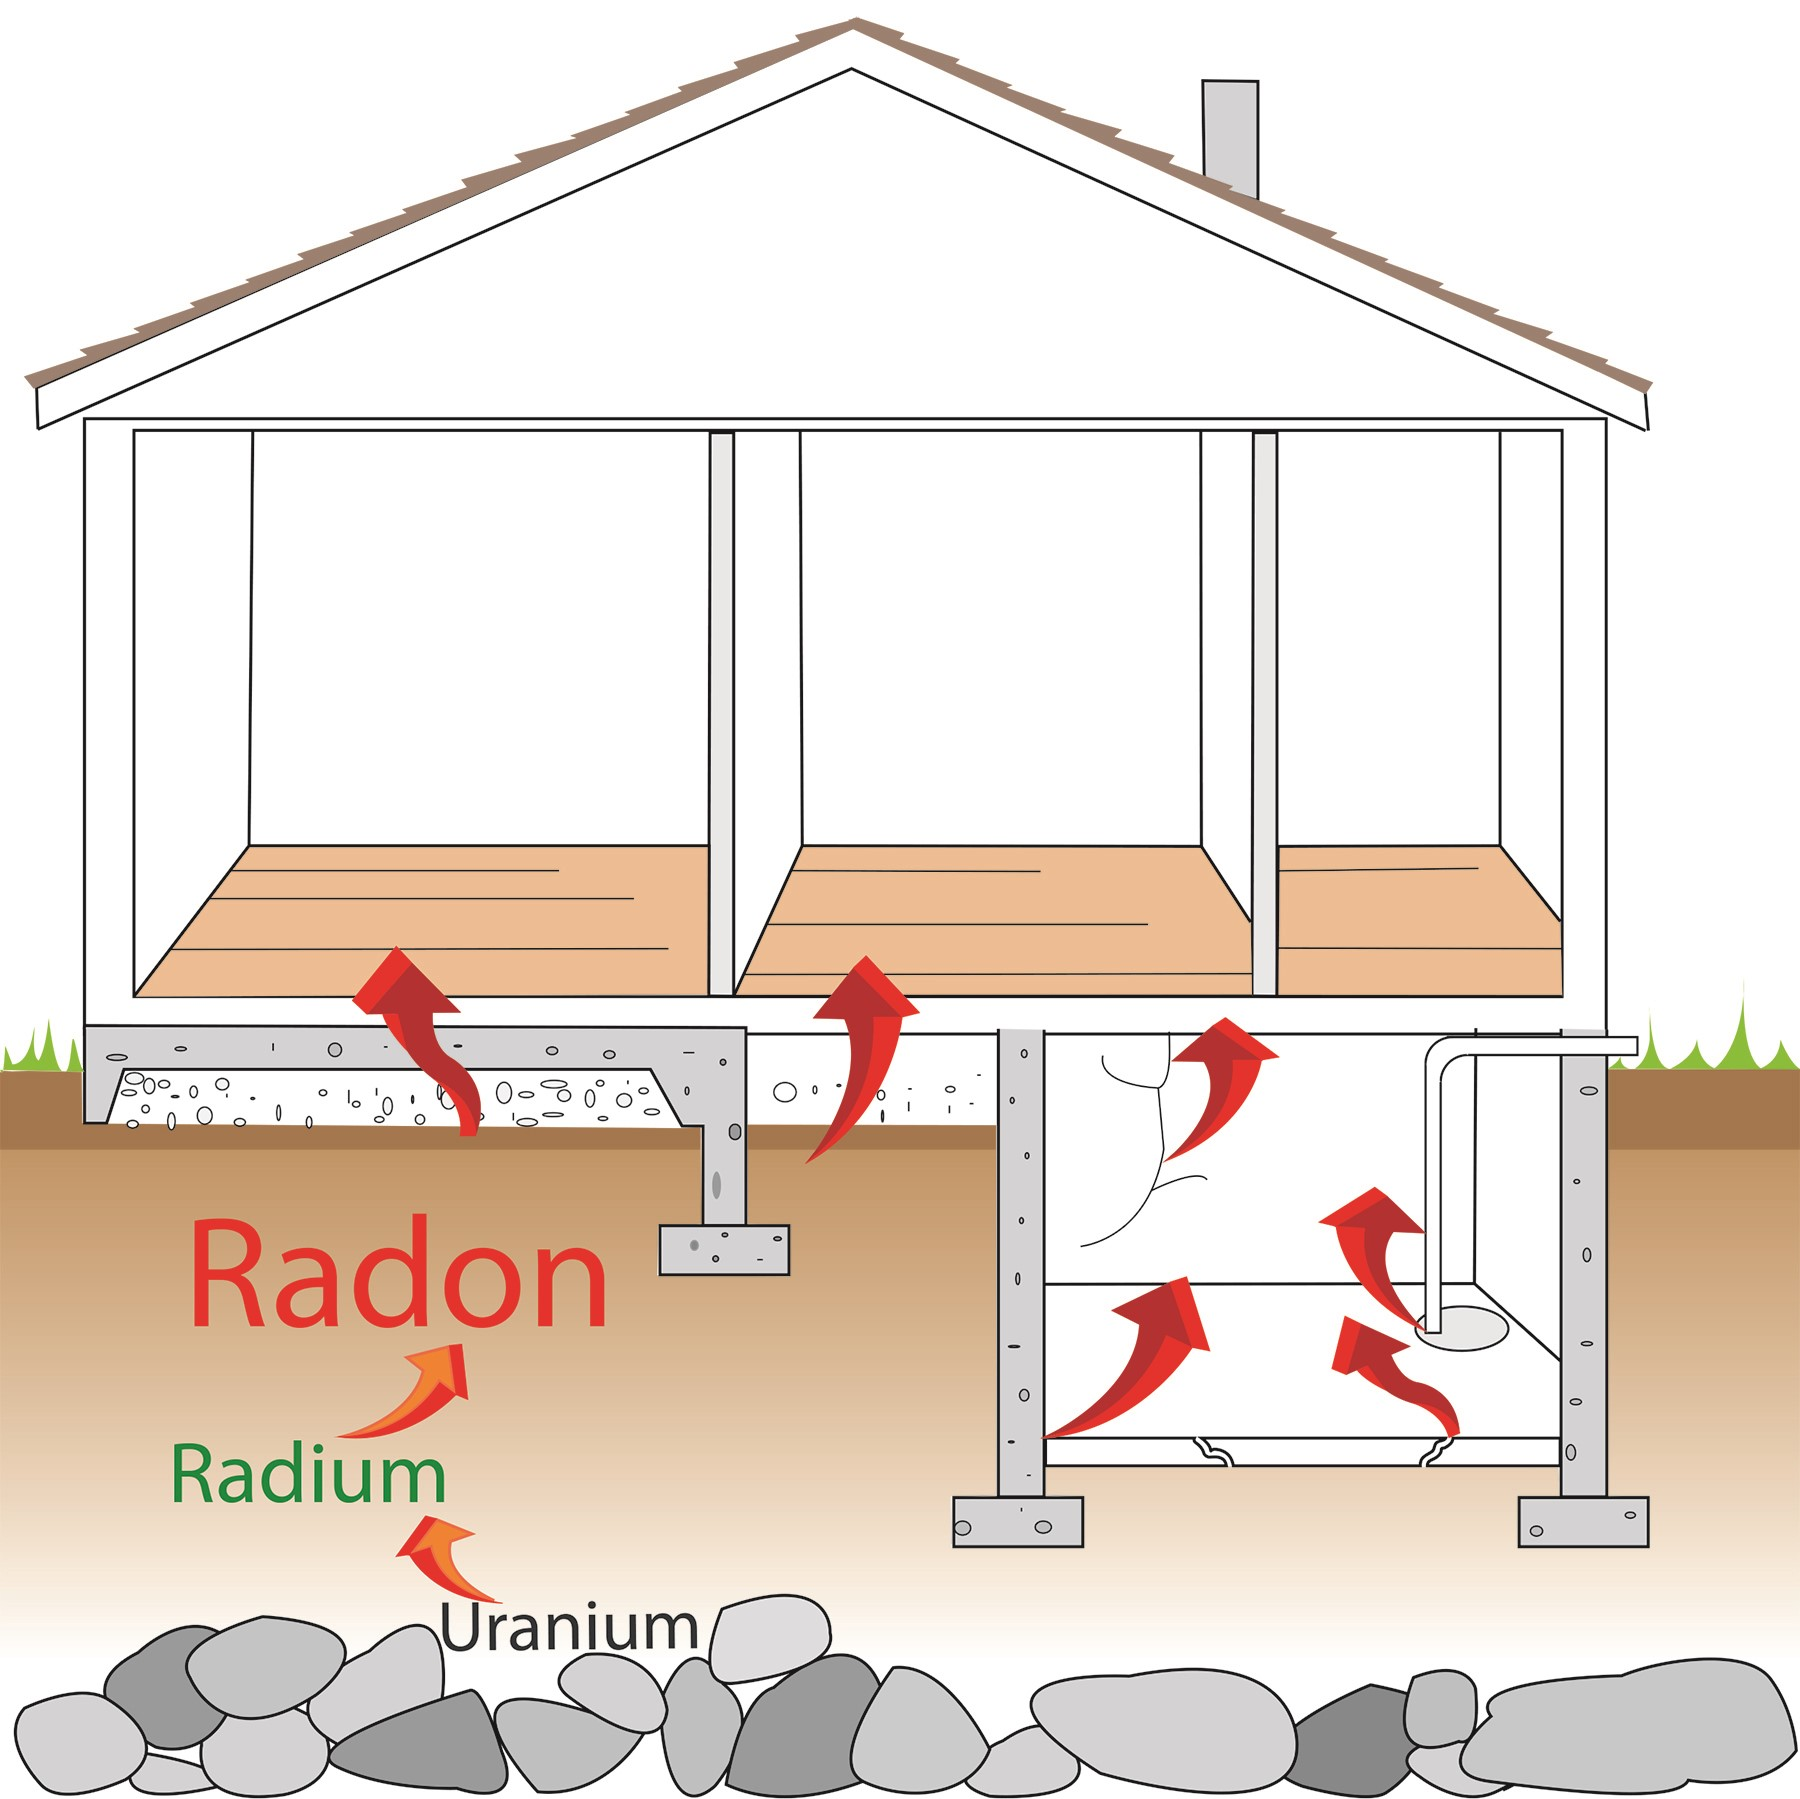 Radon in the home flows from the ground through floors and basements